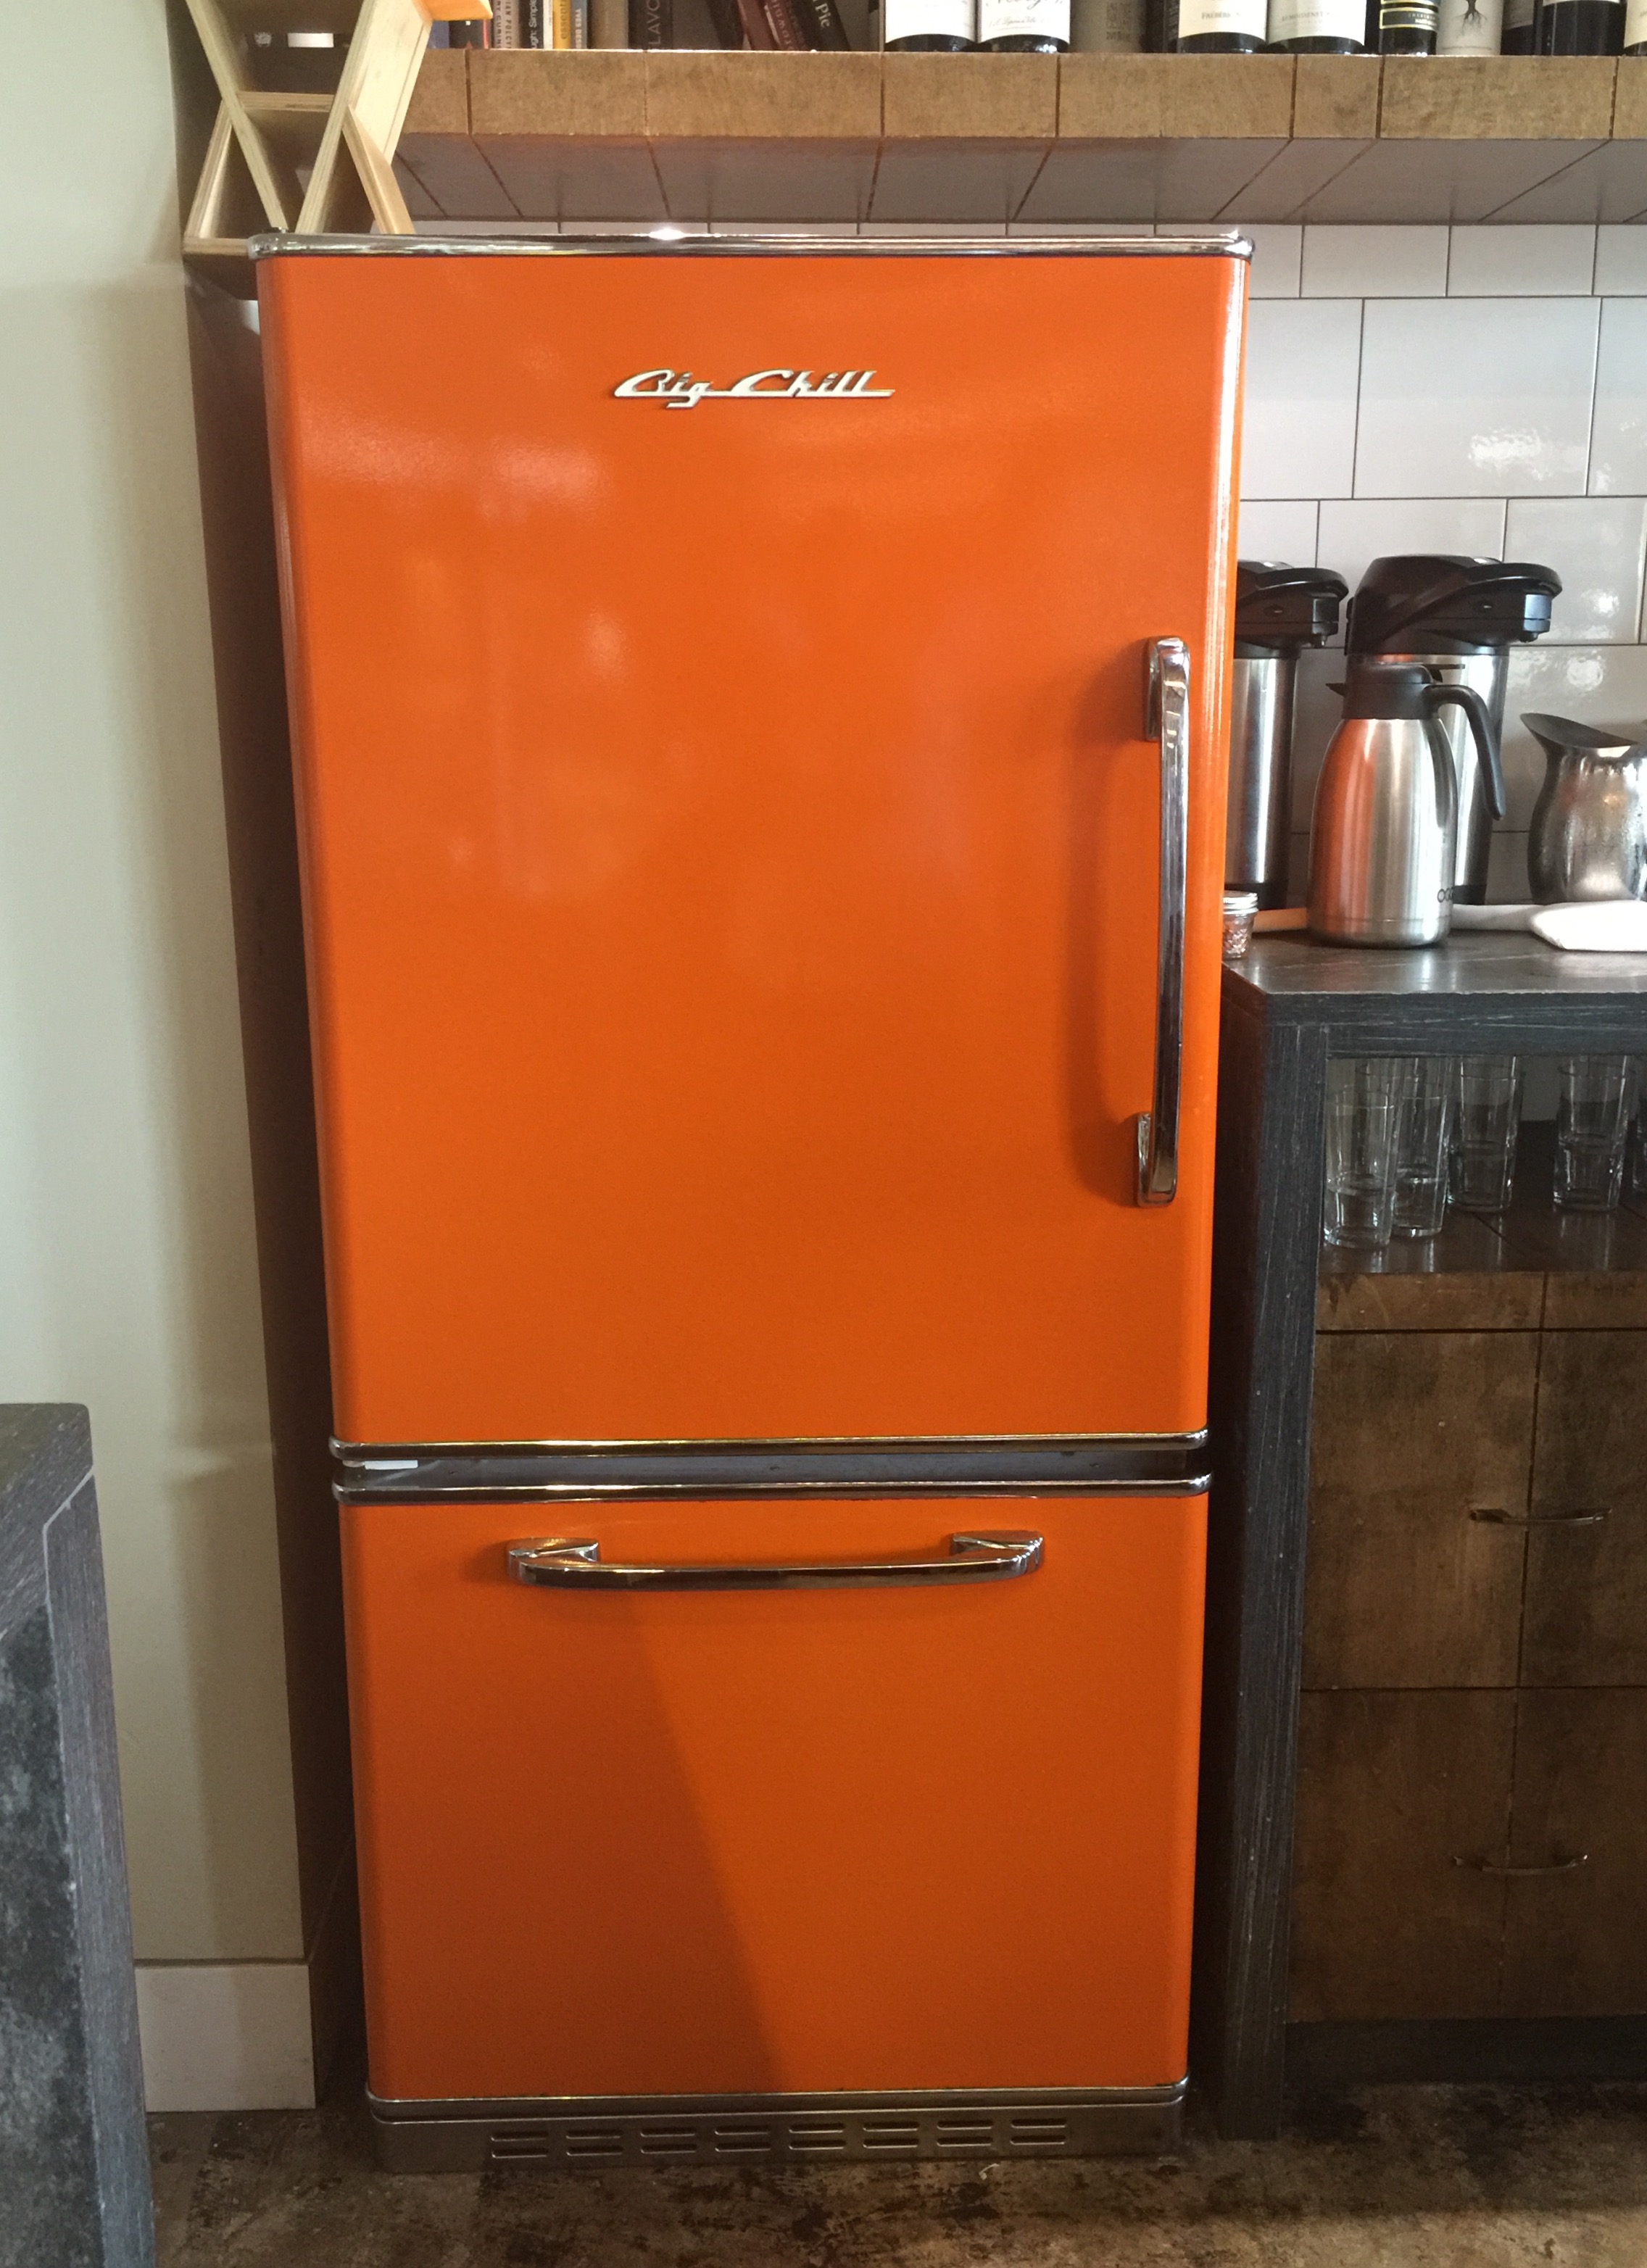 Fullsize Of Big Chill Refrigerator